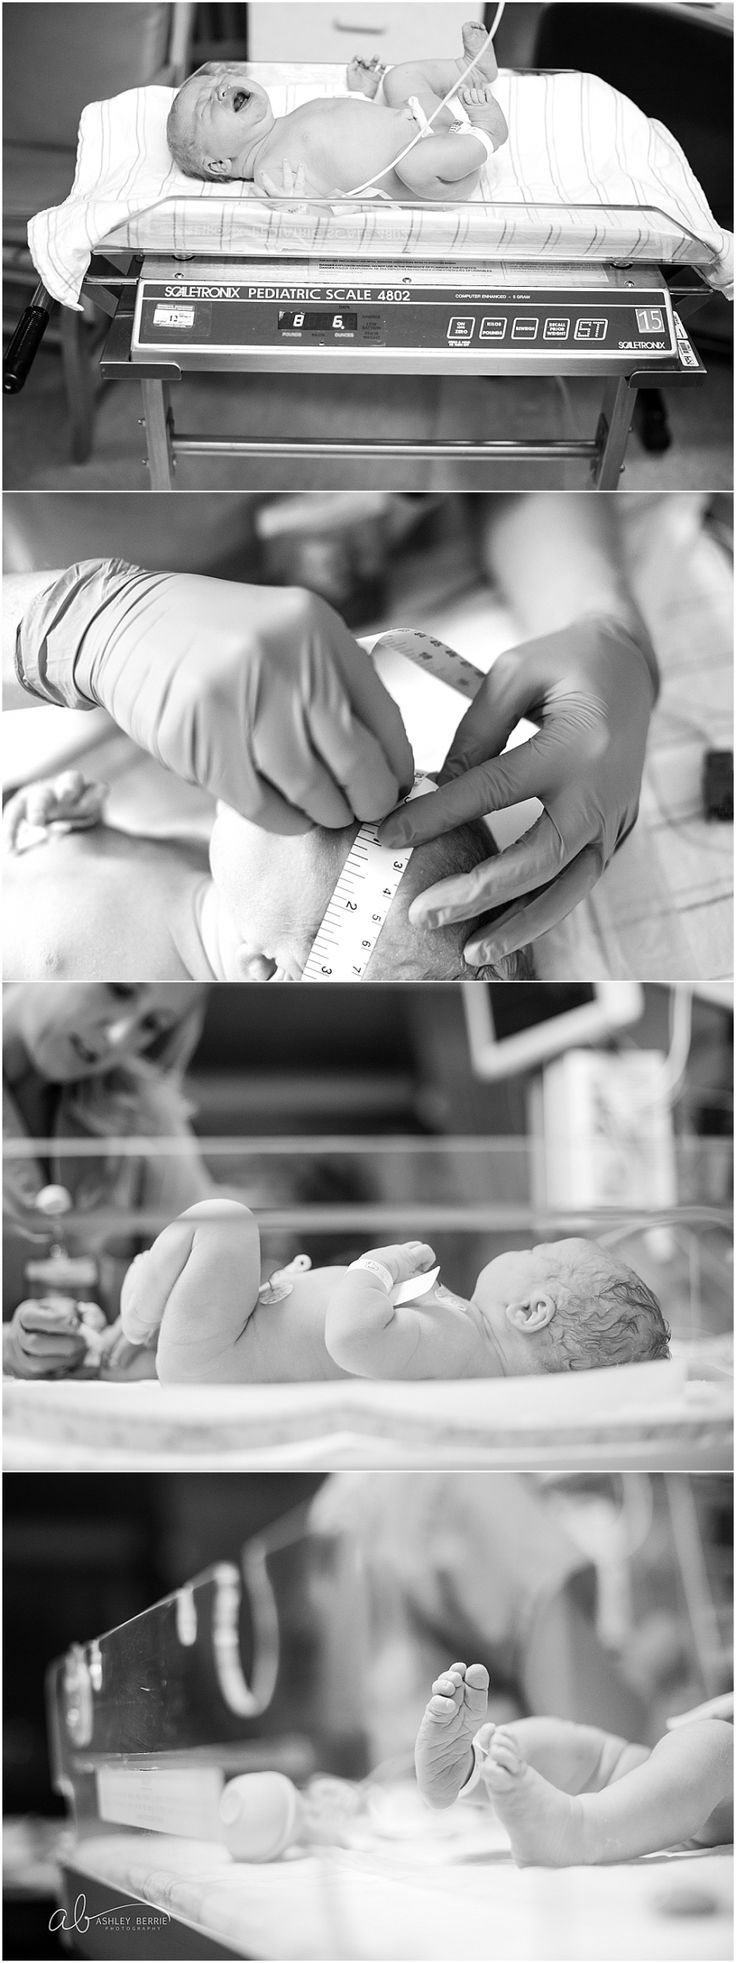 Birth Photography Ashlynn's Birth Story | A Special Delivery » Ashley Berrie Photography